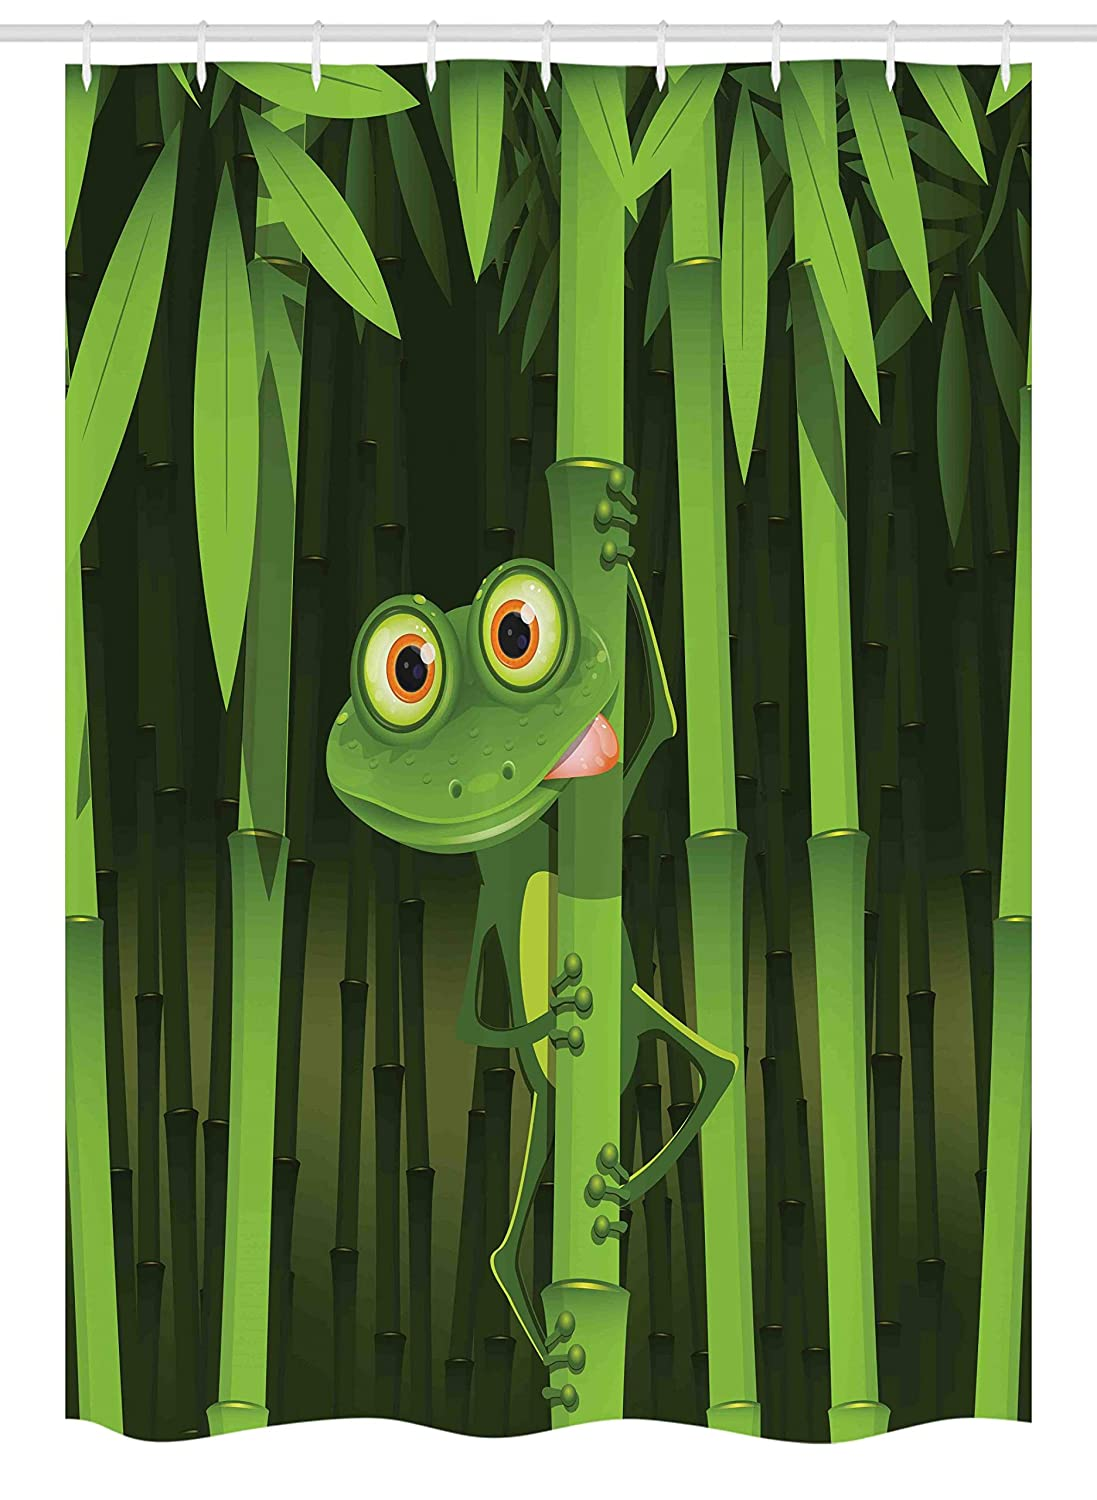 Ambesonne Animal Stall Shower Curtain, Funny Illustration of Friendly Fun Frog on Stem of The Bamboo Jungle Trees Cute Nature, Fabric Bathroom Decor Set with Hooks, 54 W x 78 L Inches, Green